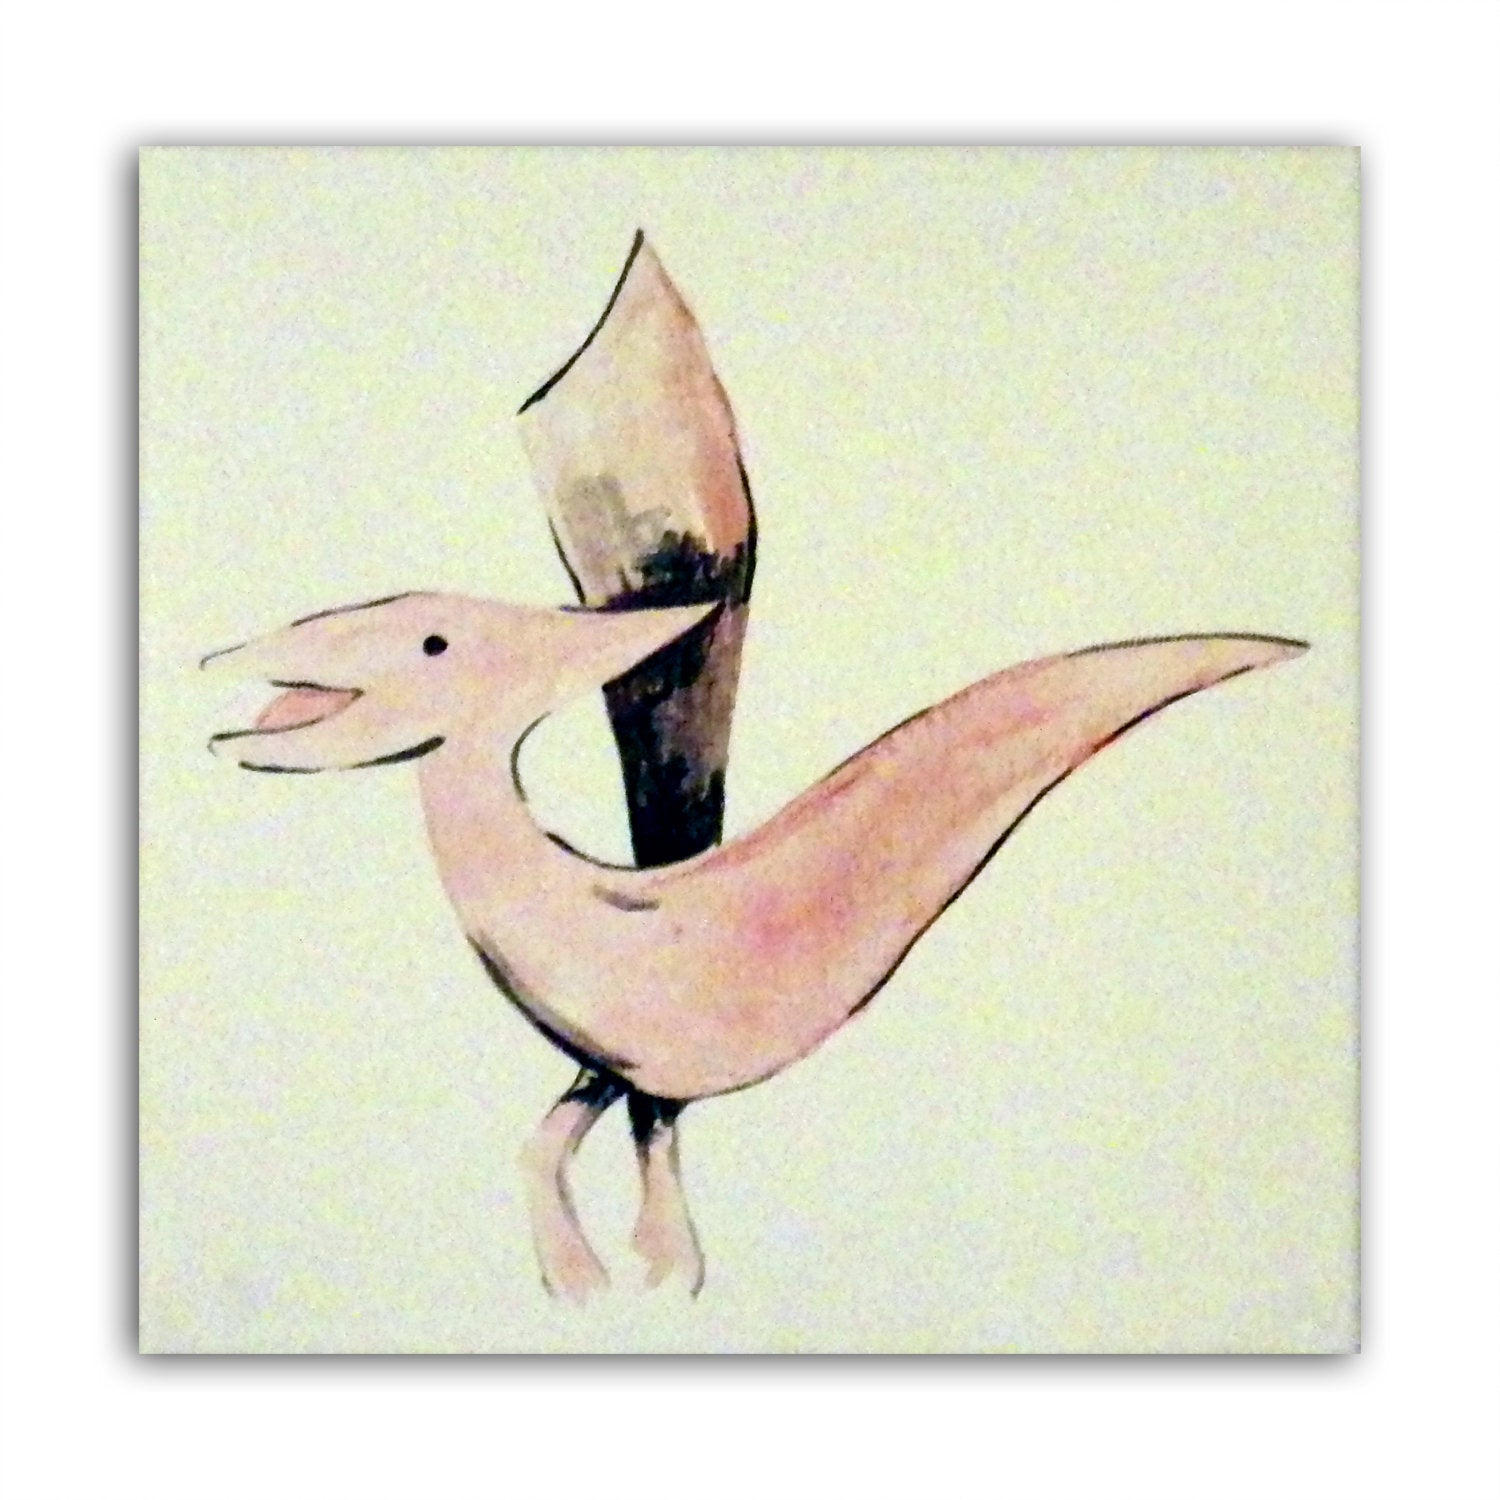 Dinosaur Art - Pterodactyl, Painting on Canvas, Boys Nursery Decor, Dinosaur Decor, Boys Art